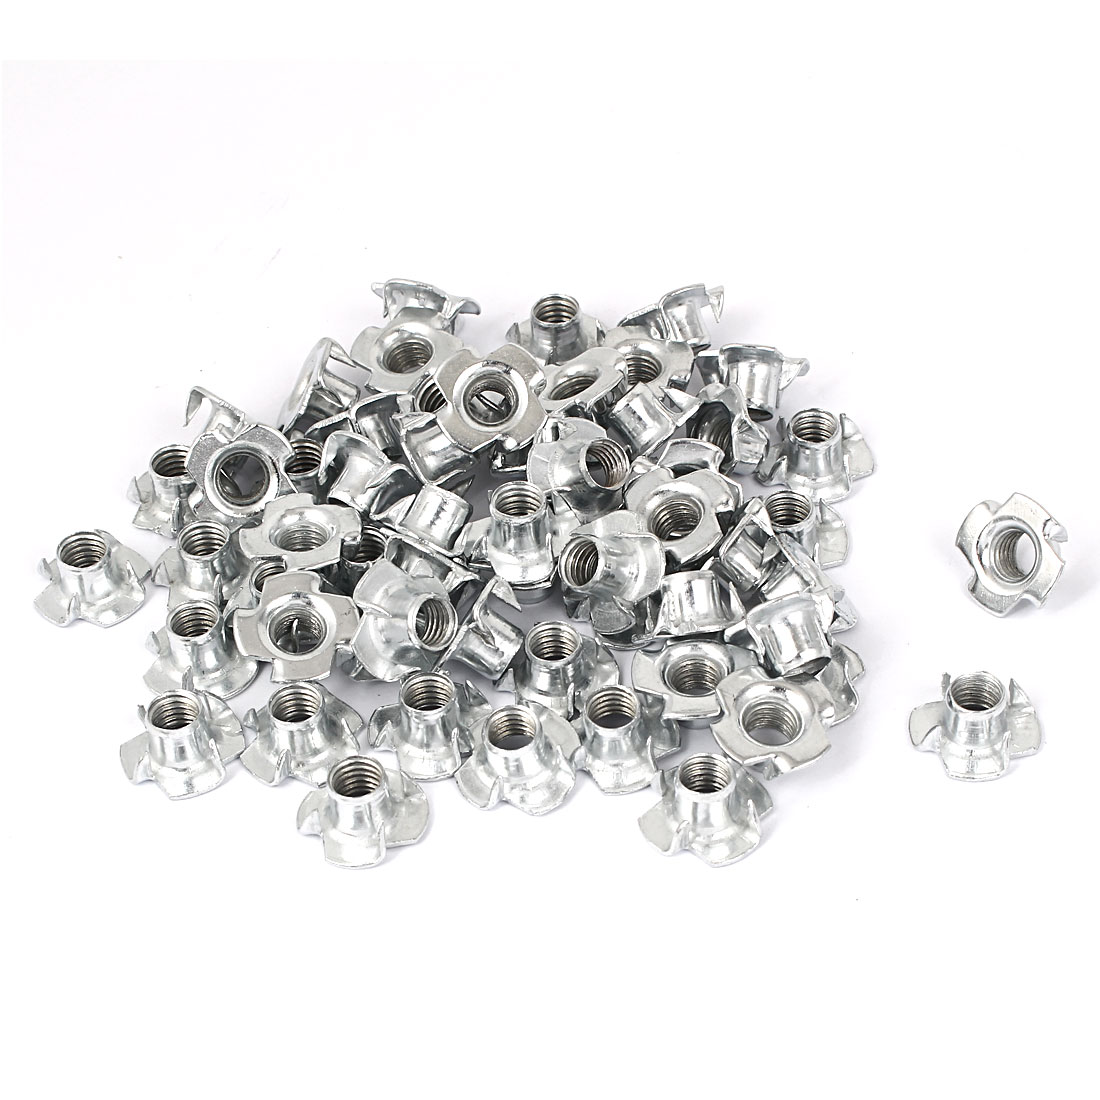 Furniture M8 Thread Zinc Plated 4 Prong Tee Nuts Insert Connectors 60pcs